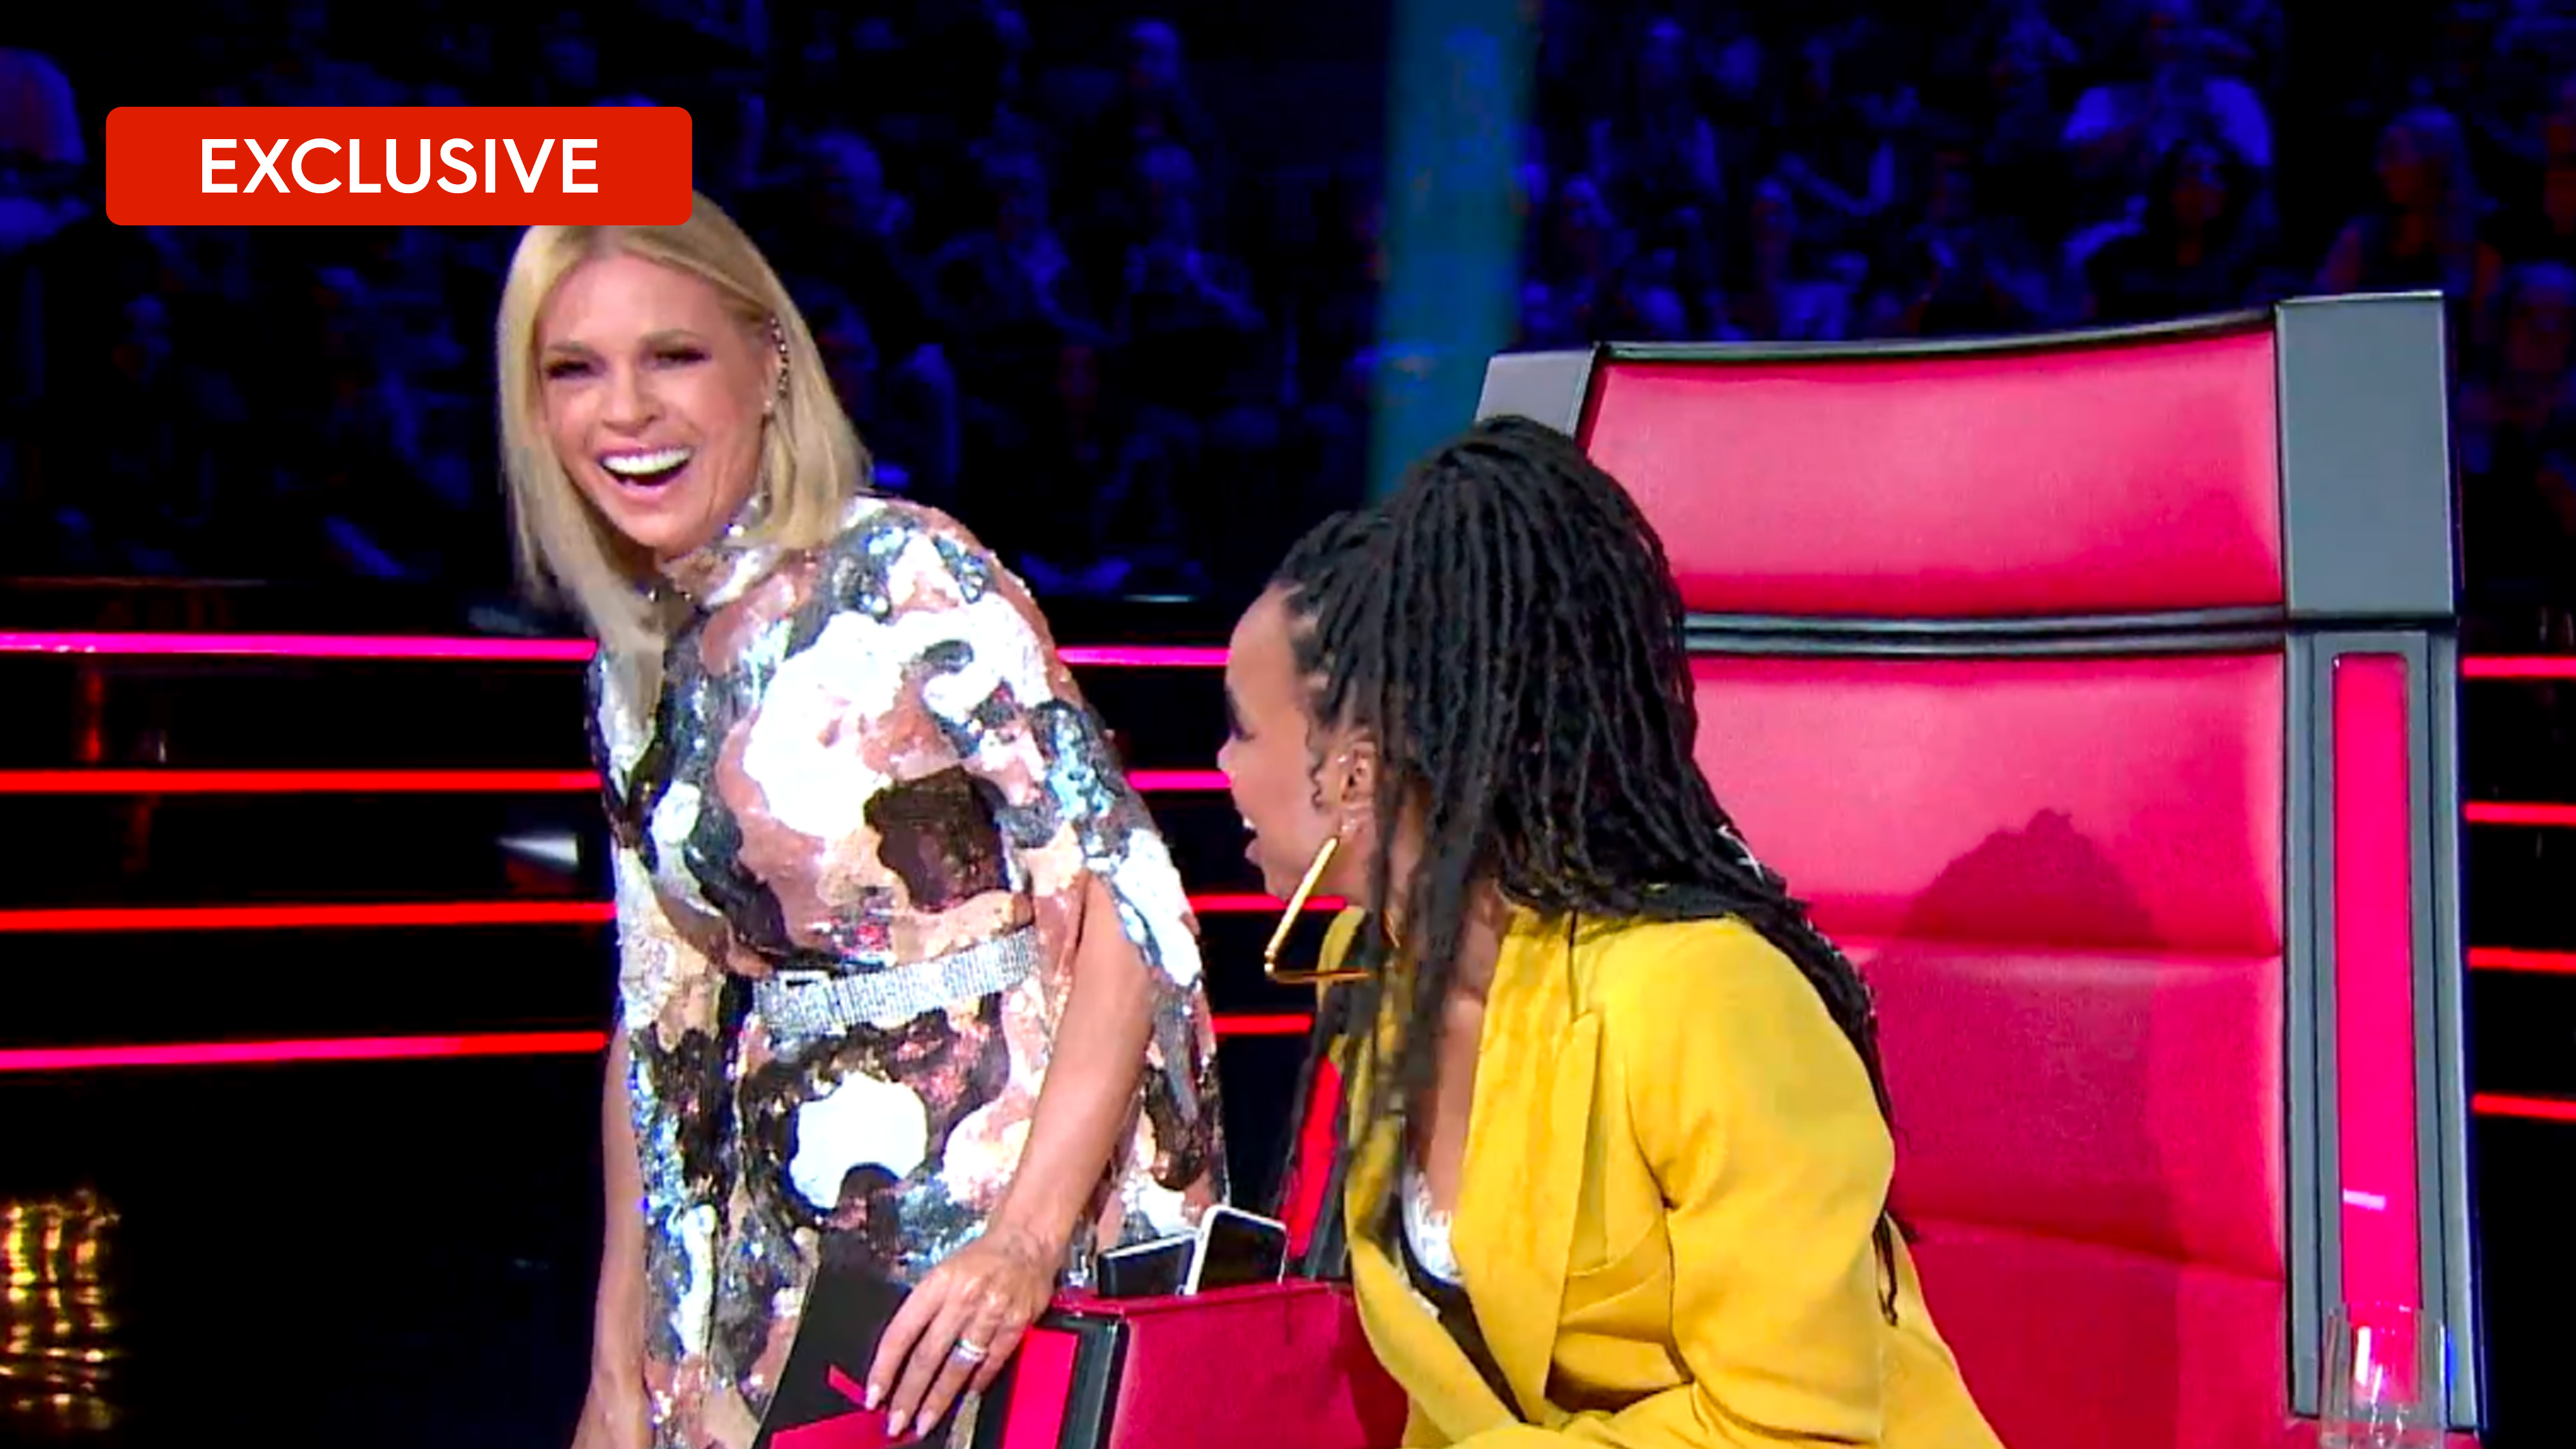 The Voice's Battles bloopers